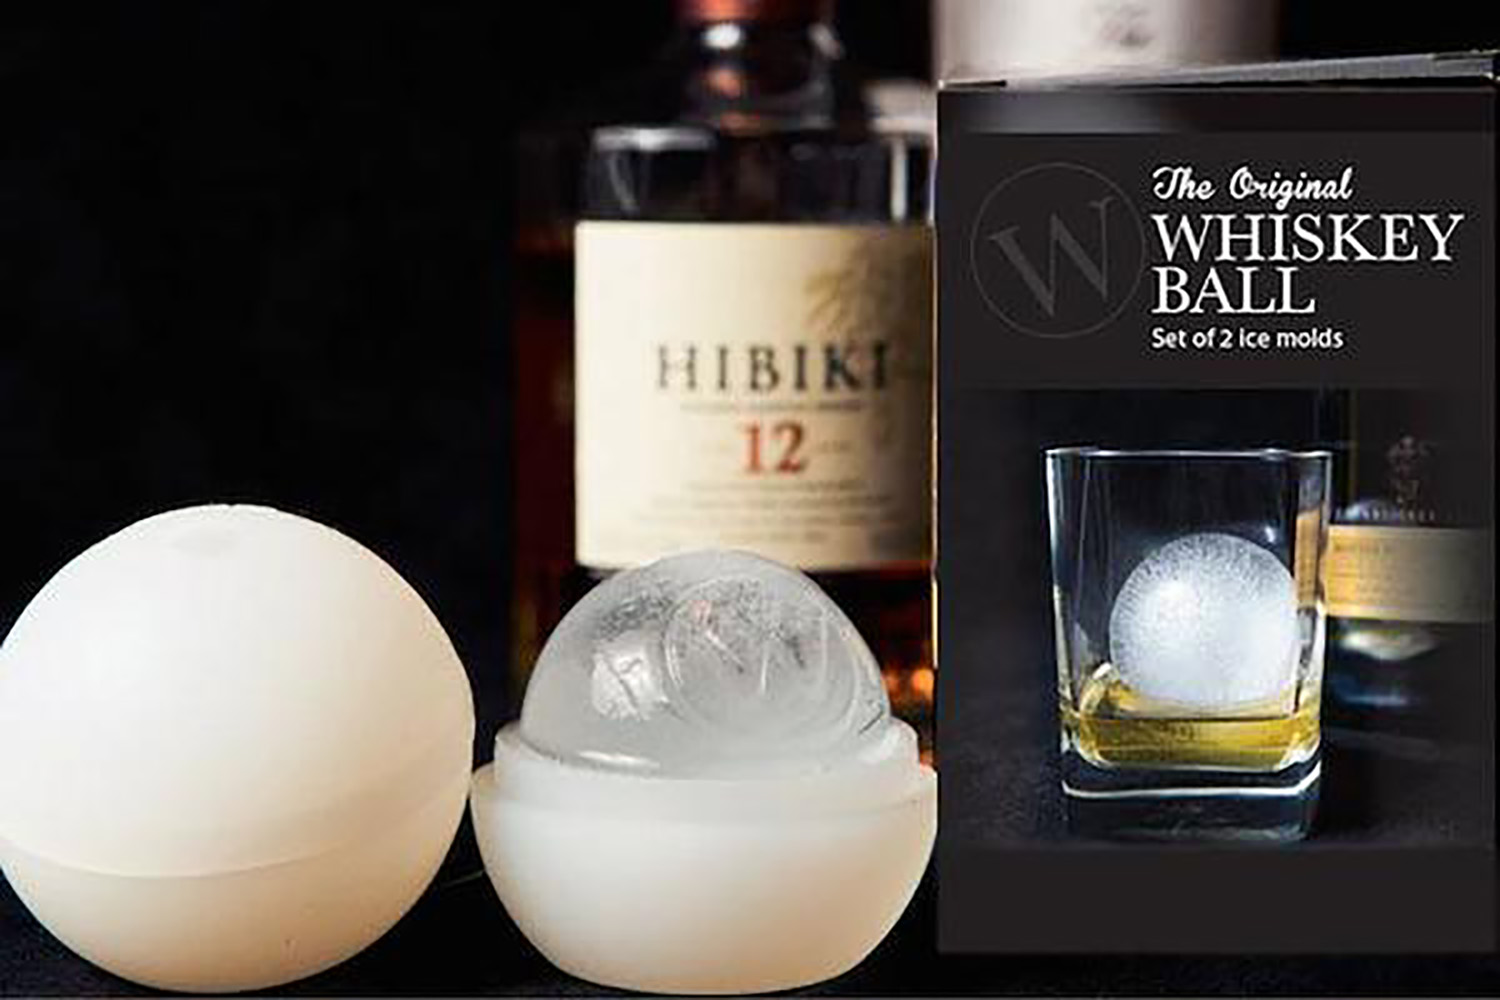 jp wisers whisky gift guide